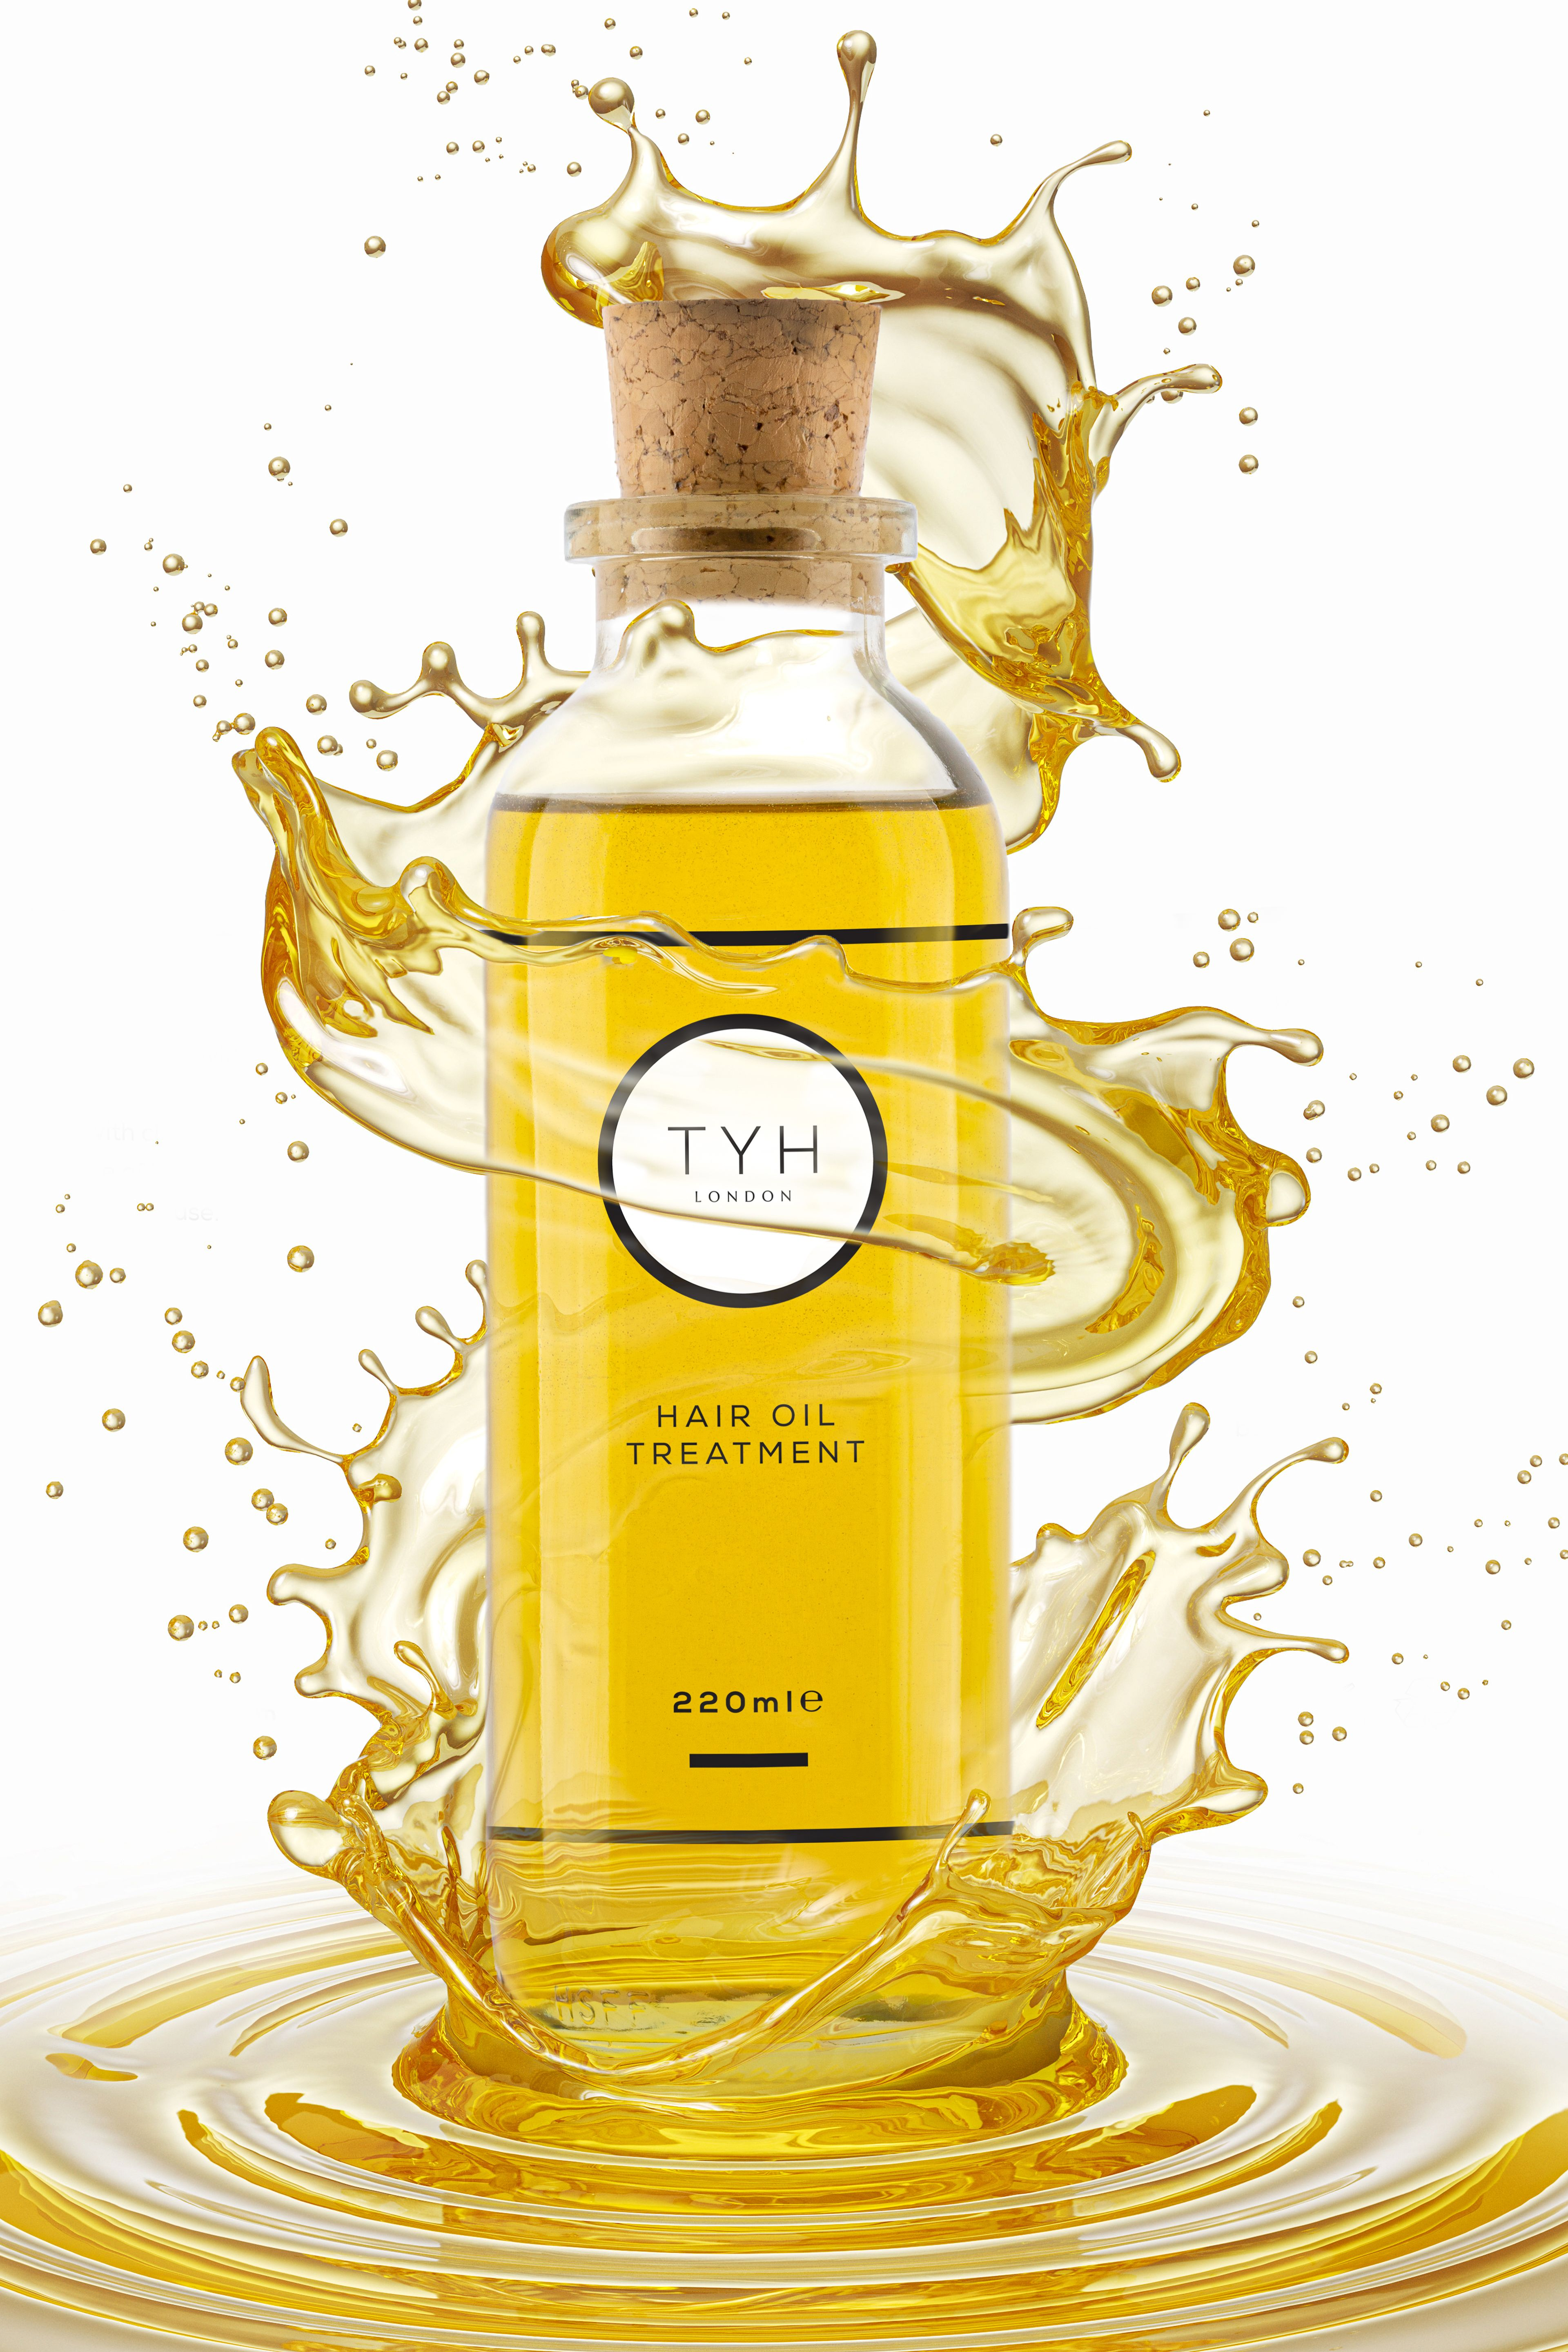 TYH London's haircare product